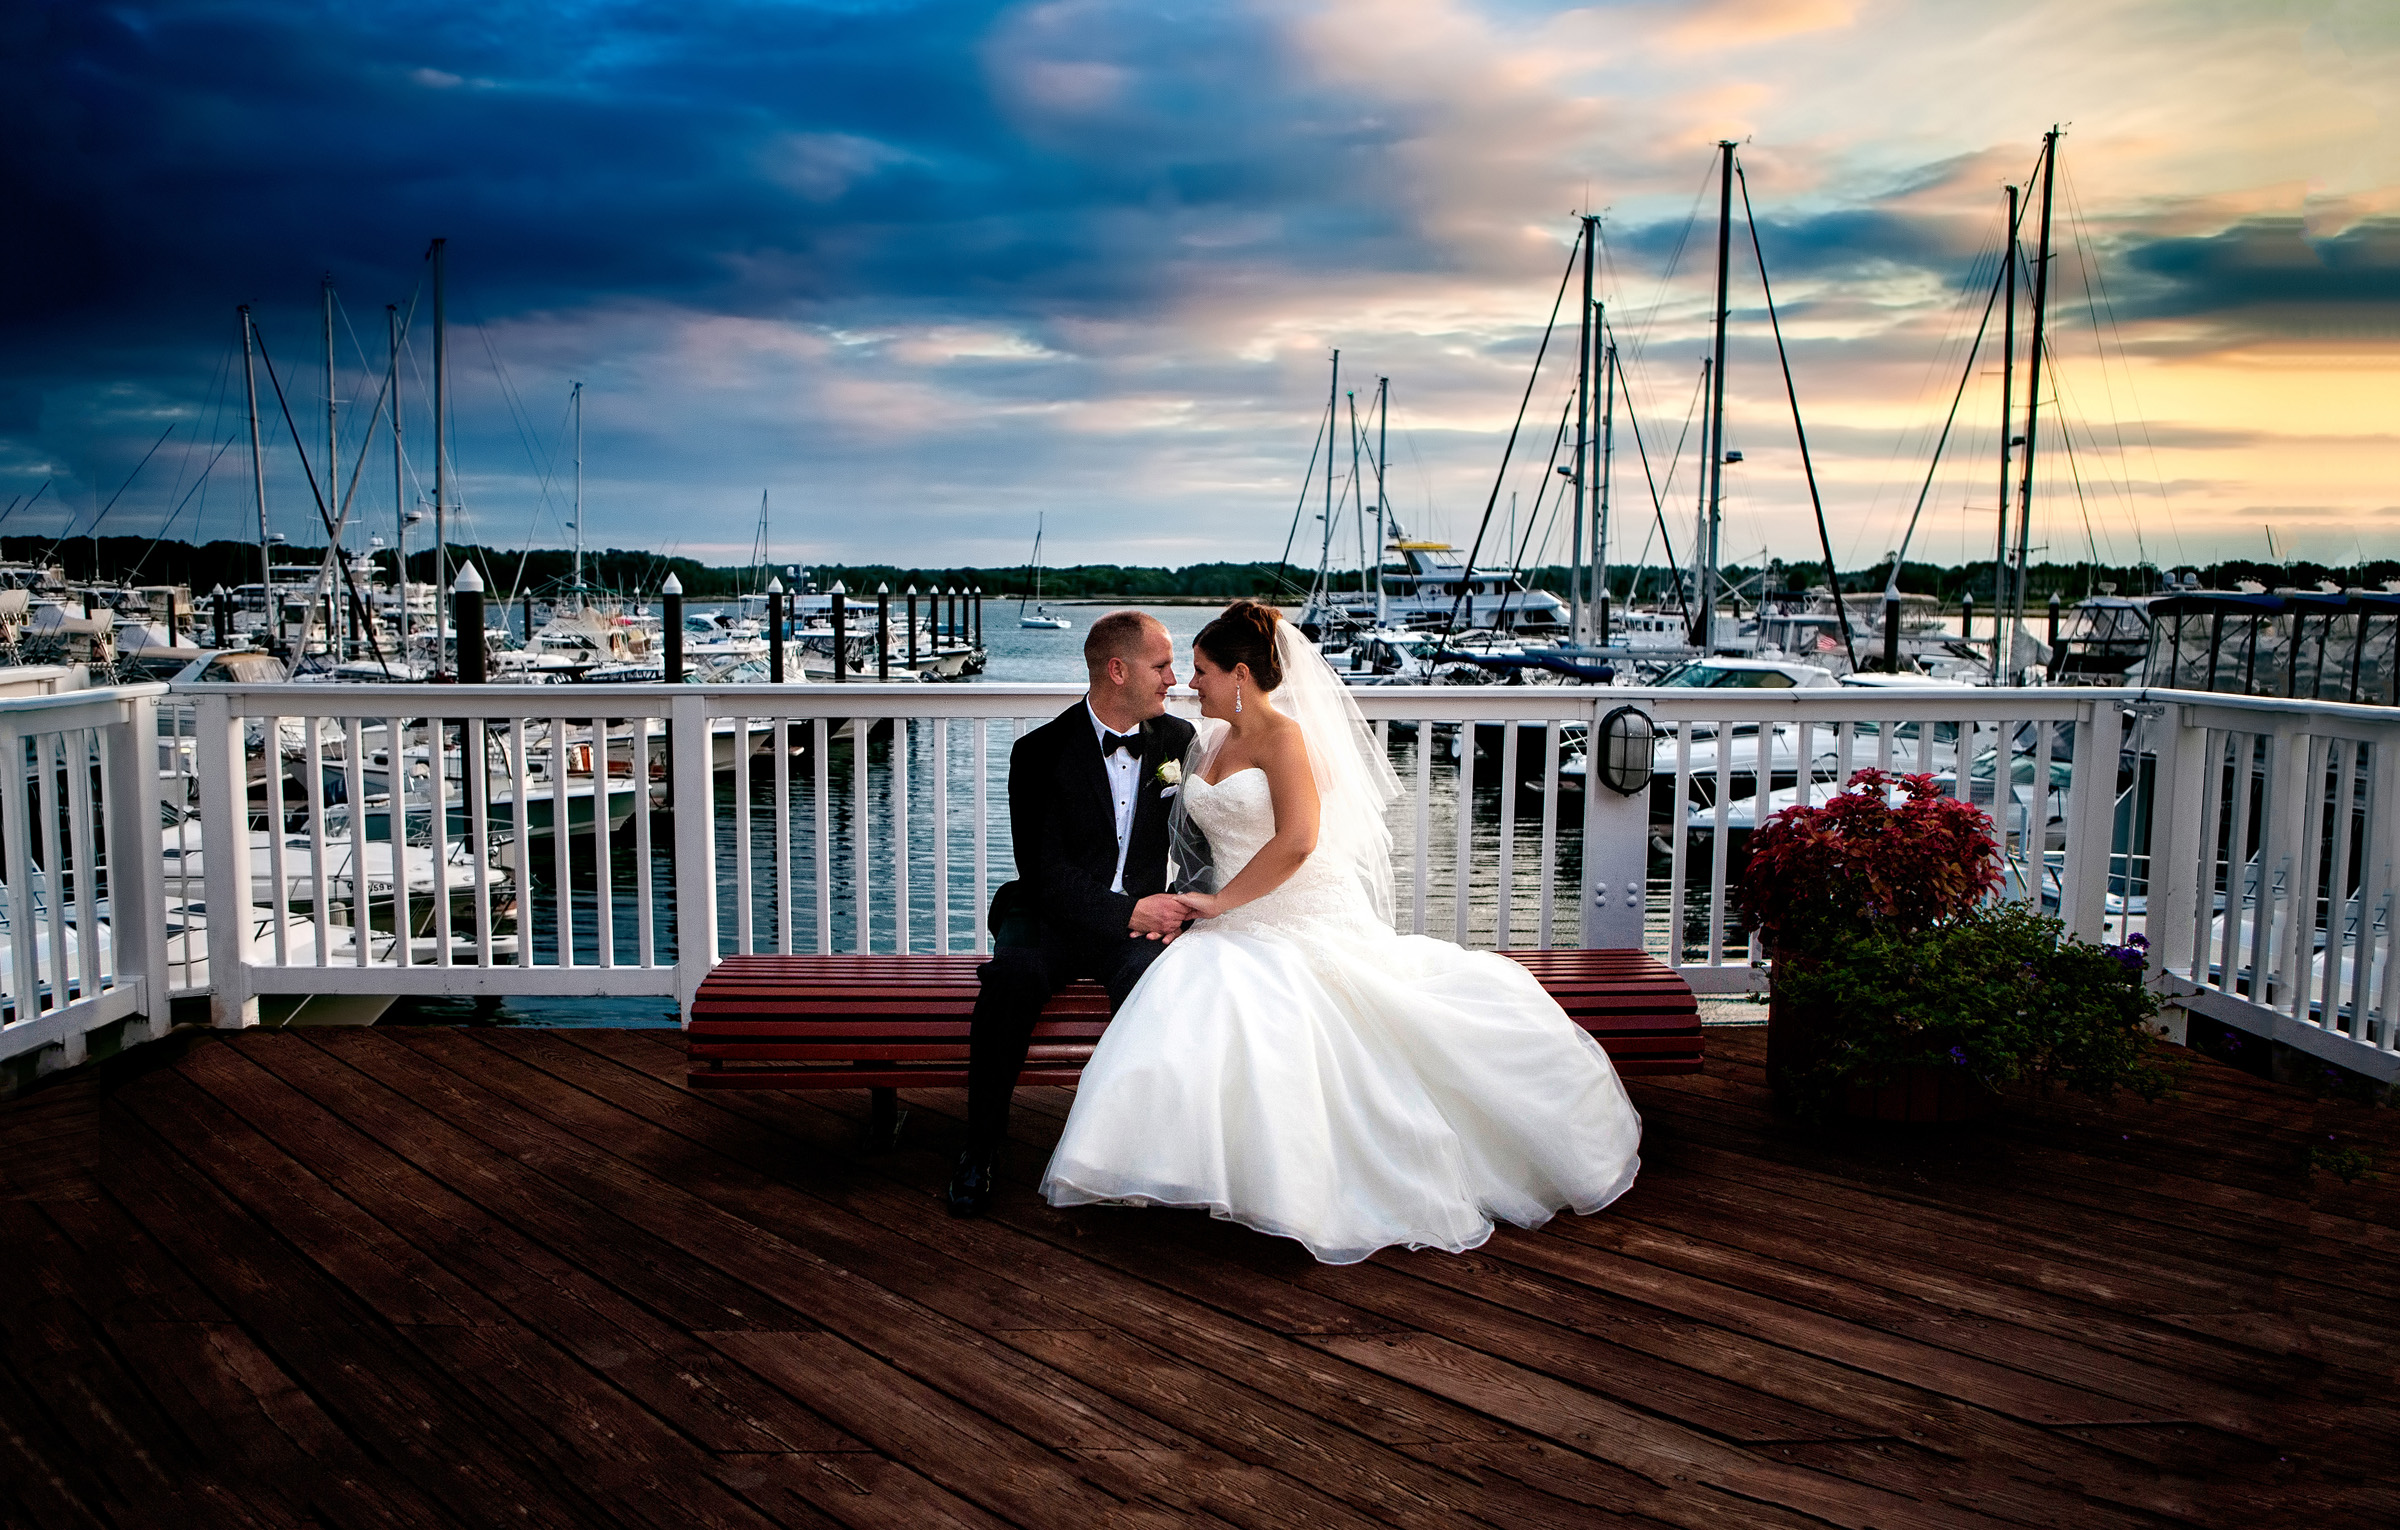 wedding couple at Wentworth Marina - wentworth by the sea wedding, new castle, new hampshire